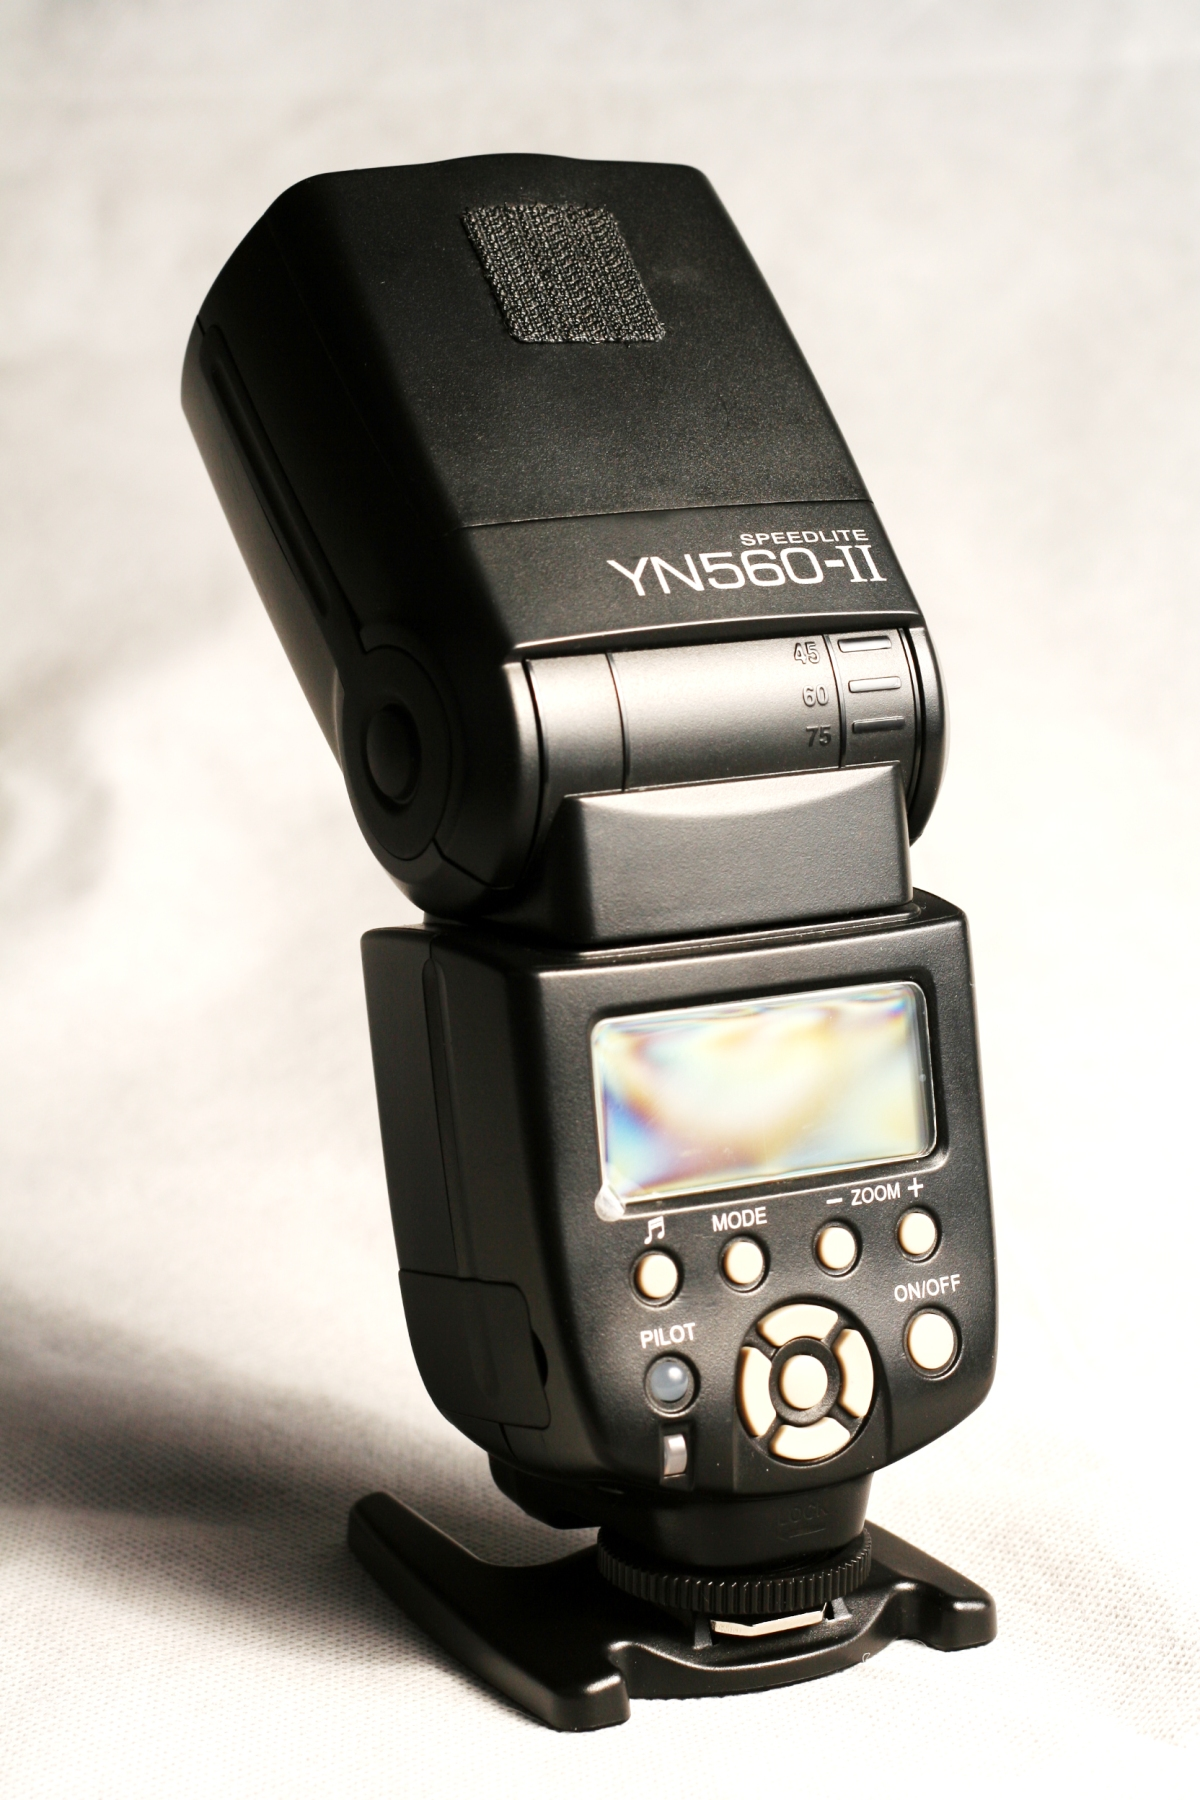 Speedlight Review (Yongnuo YN-560 II)